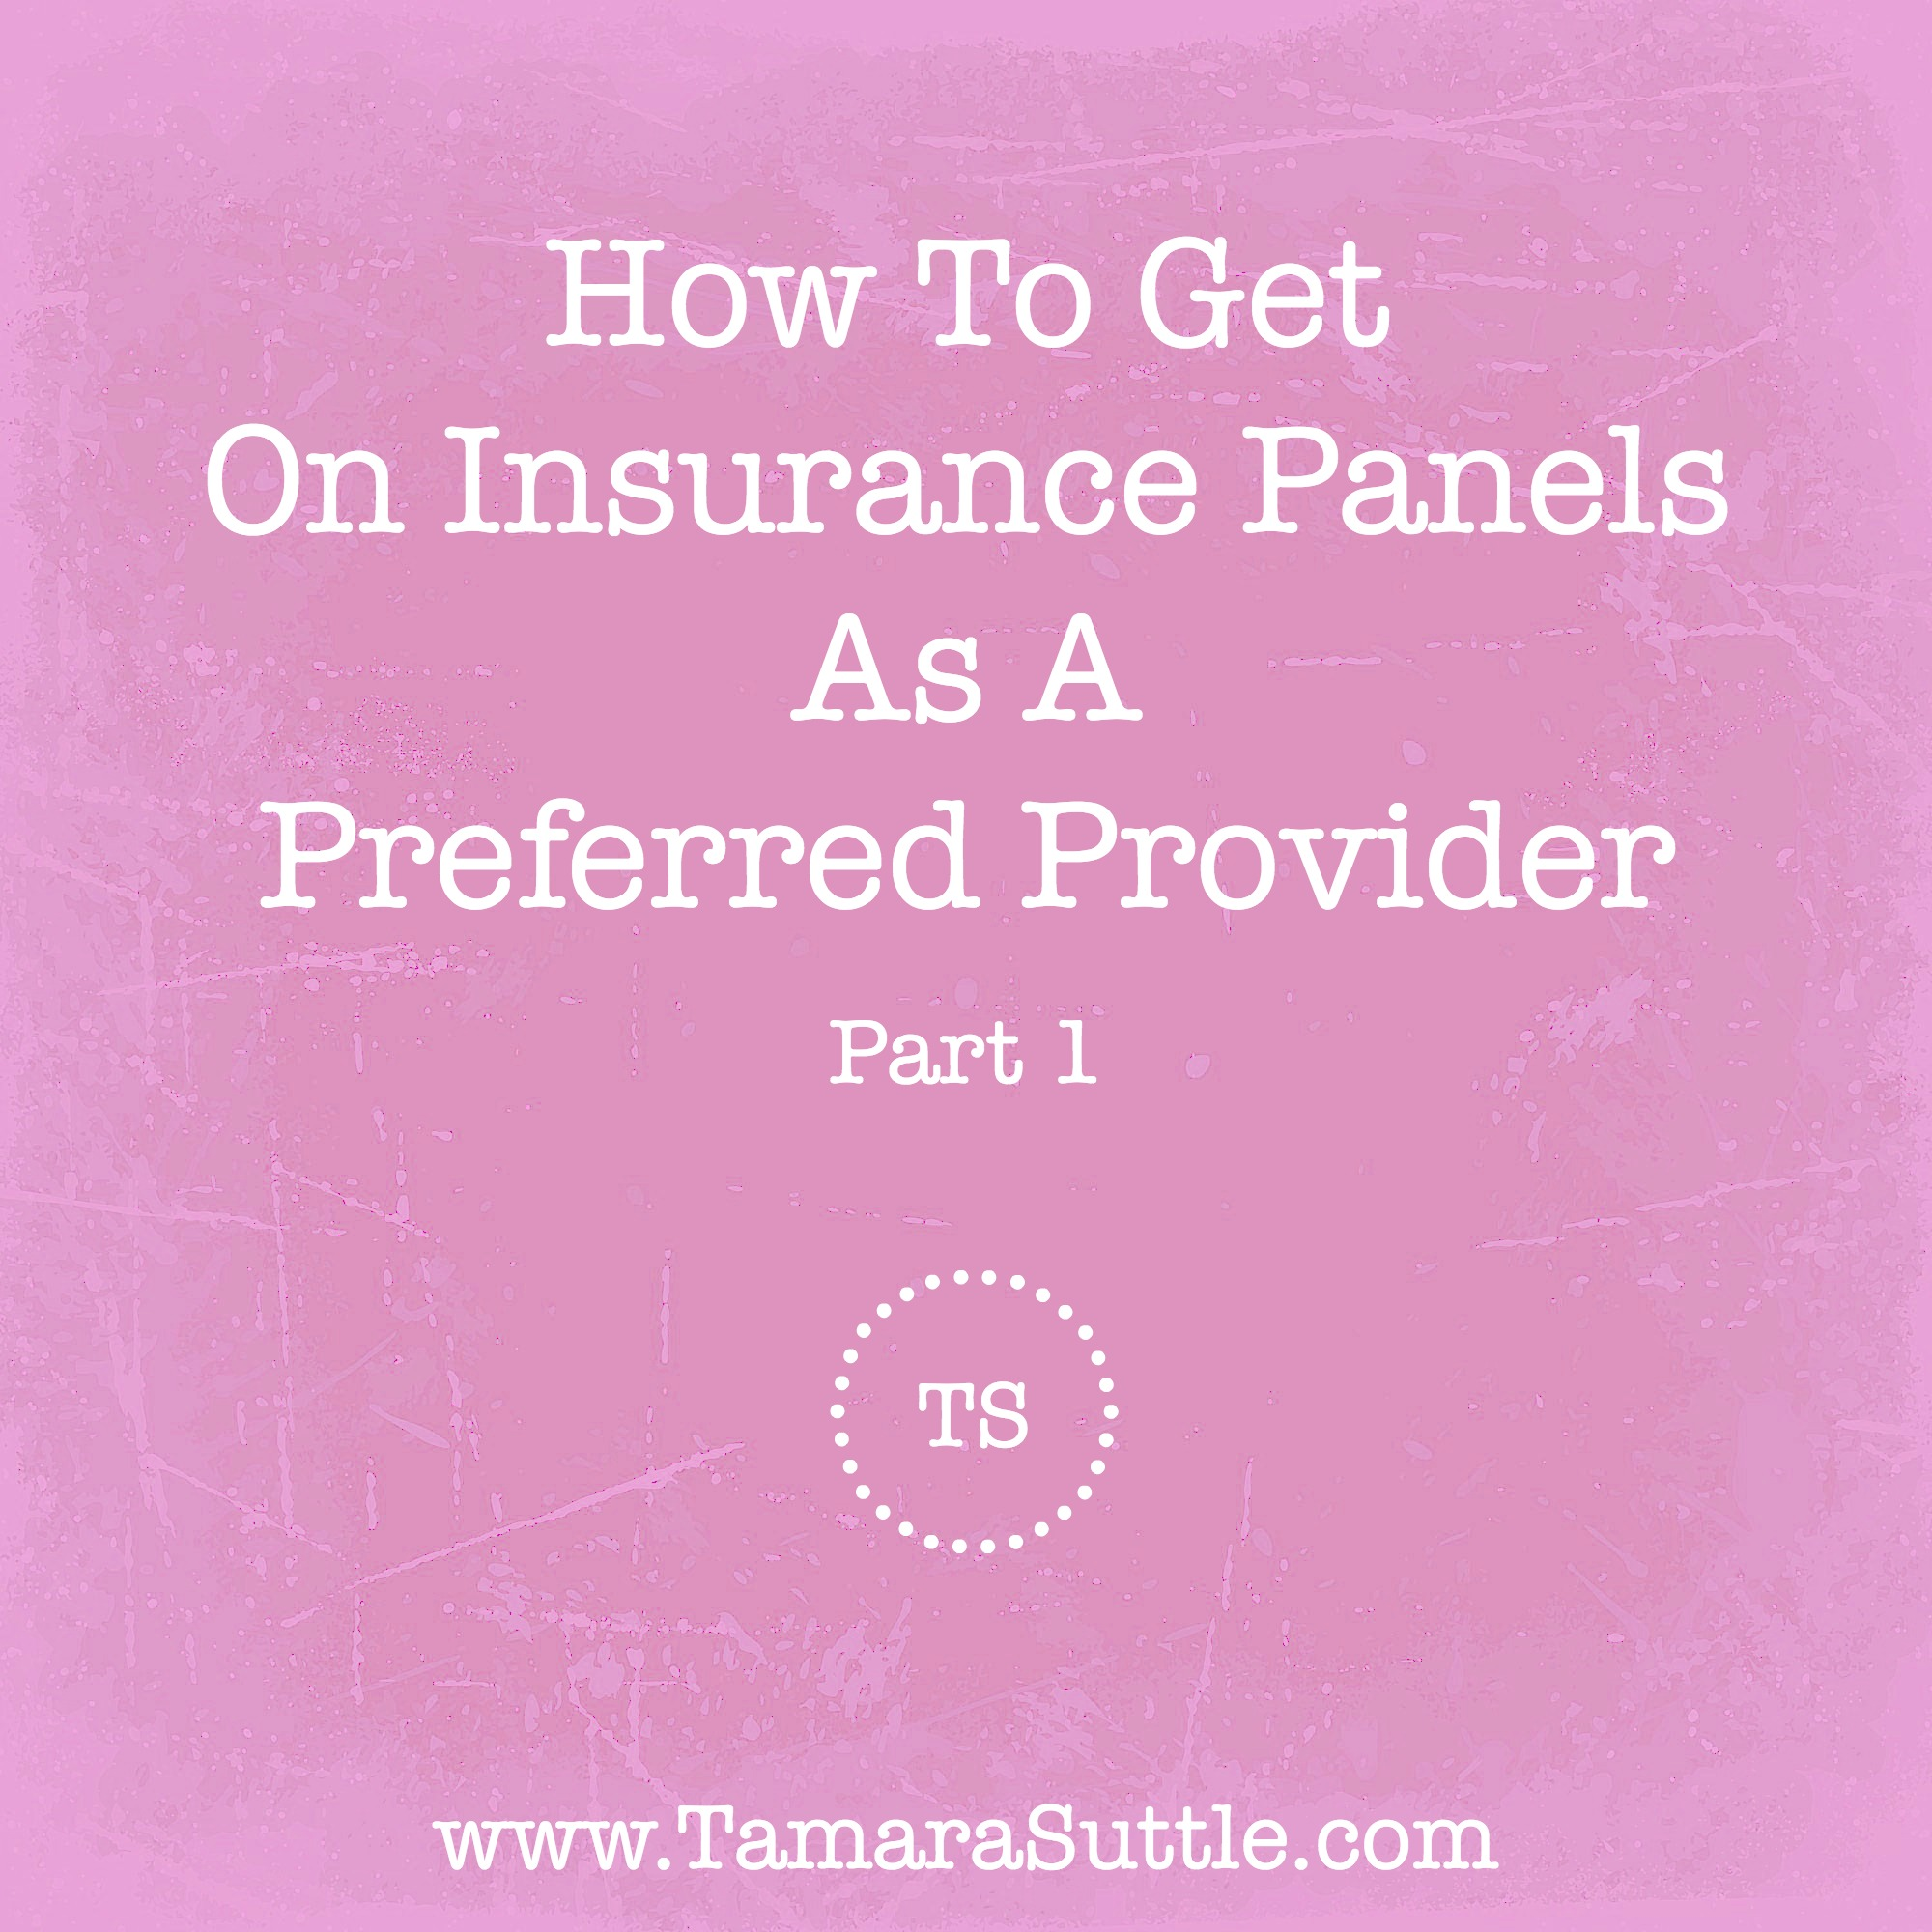 How To Get On Insurance Panels As A Preferred Provider – Part 1 Sample Insurance Letter Of Intent To Join on letter to your mentor, application to join, waiver to join, letter of intent word, letter of intent history, letter to join a sorority, letter thanking mentor, letter of recommendation mentor, letter of intent commitment, letter of intent fire, letter of refusal of work,